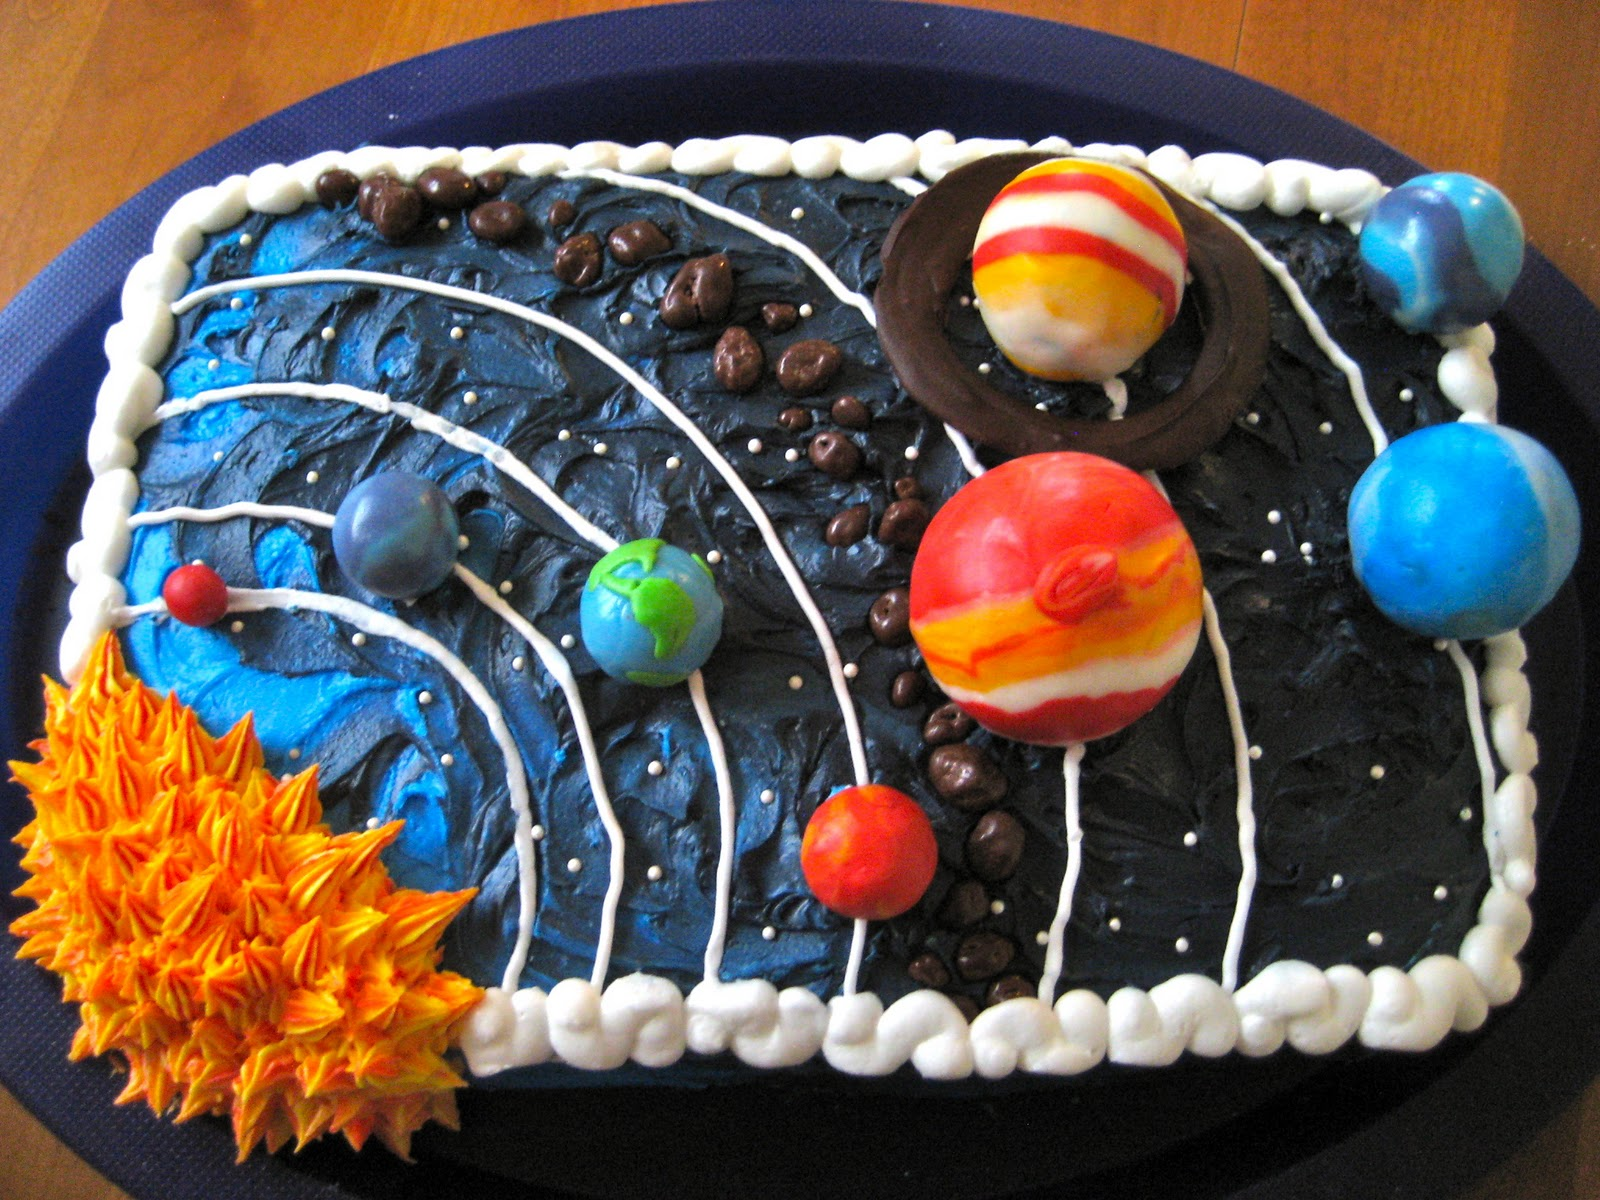 Cake Decorating Ideas Solar System : Space birthday ideas on Pinterest Outer Space, Solar ...